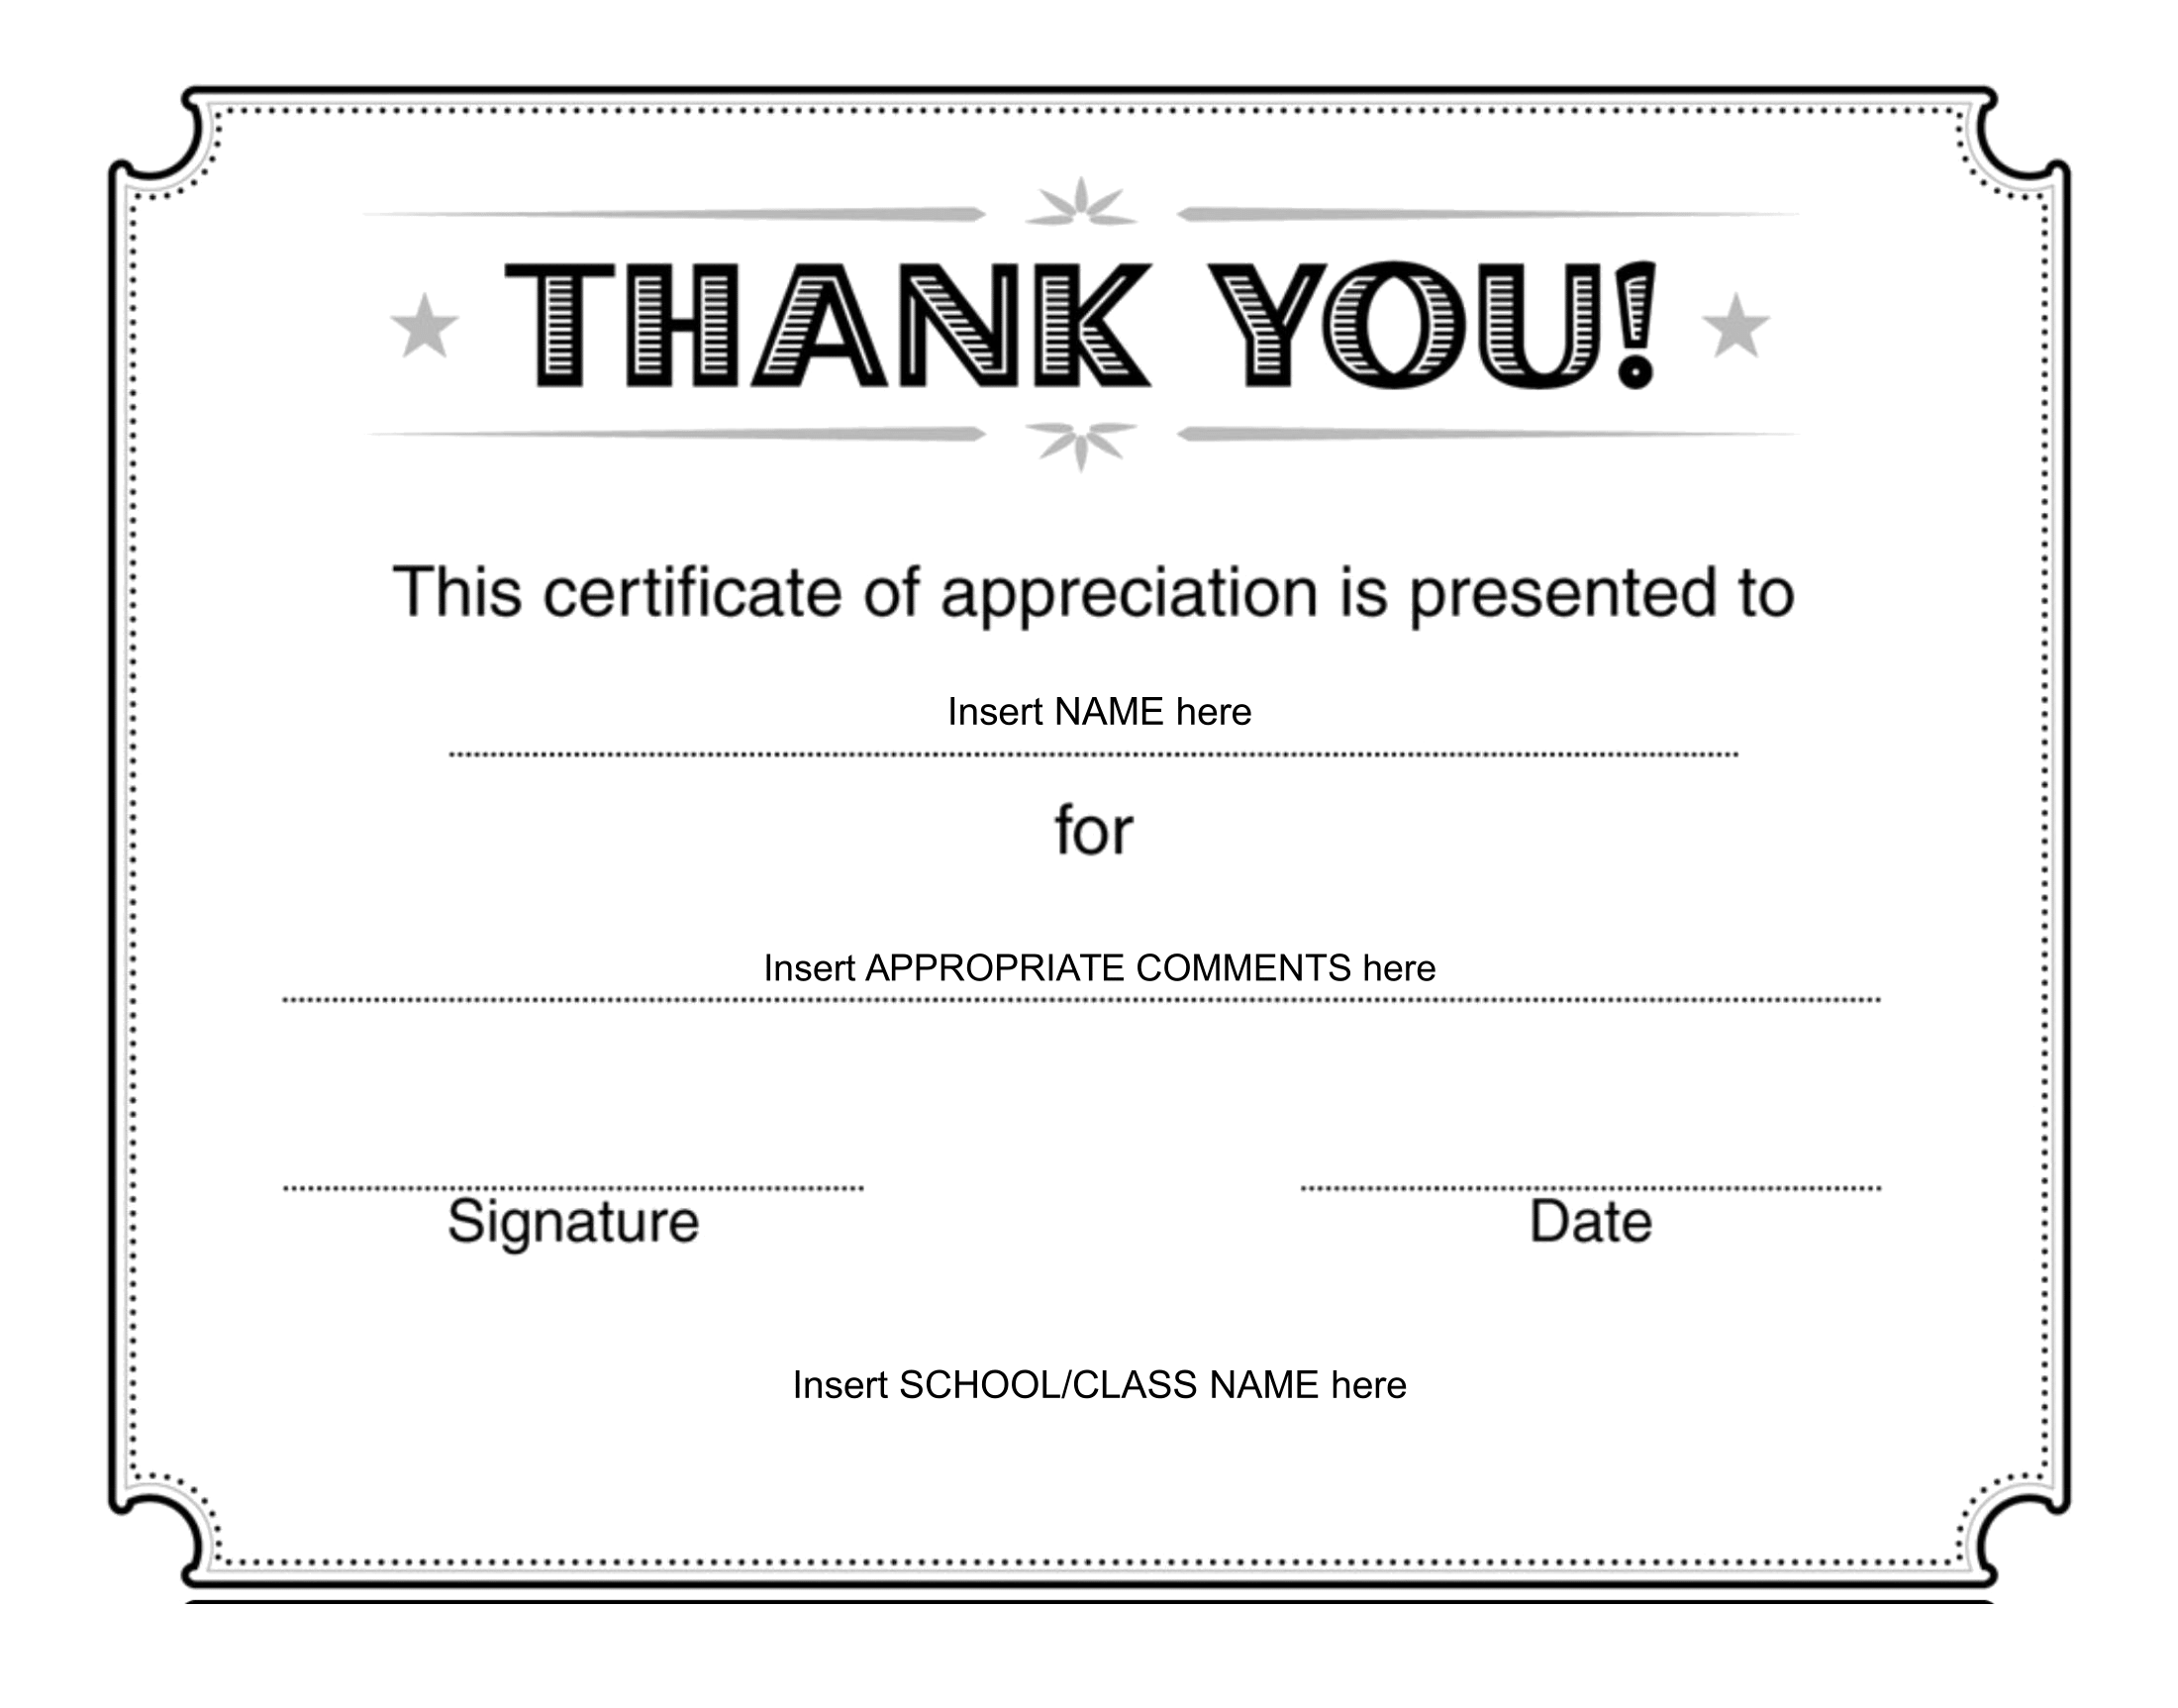 Thank You Certificate – Download FREE Template